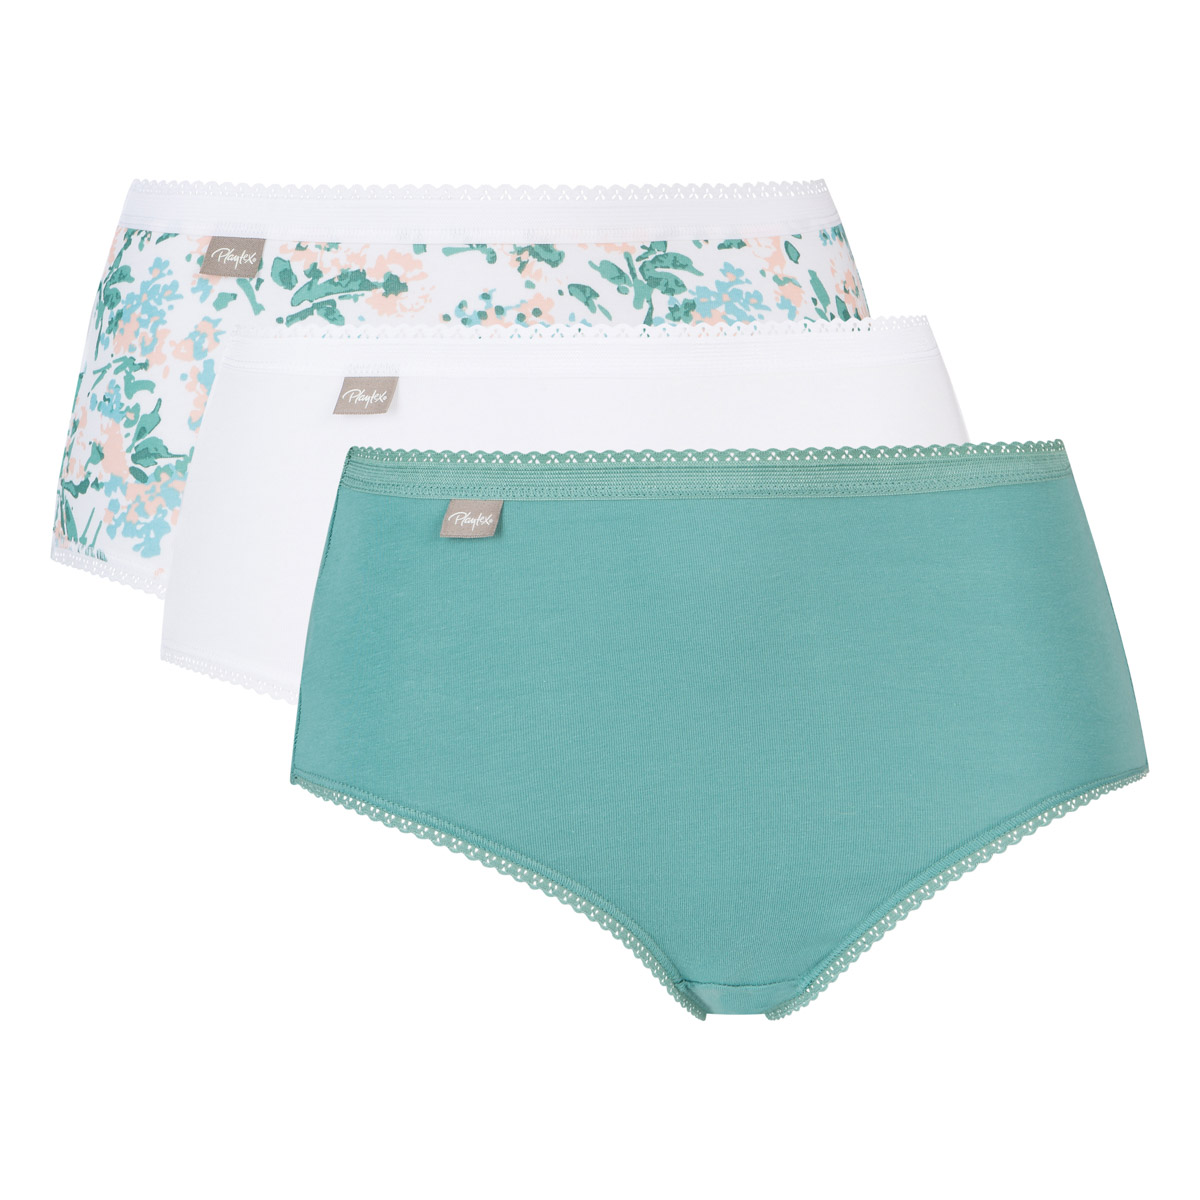 3 pack of midi knickers in green, white & flower print Cotton Stretch, , PLAYTEX